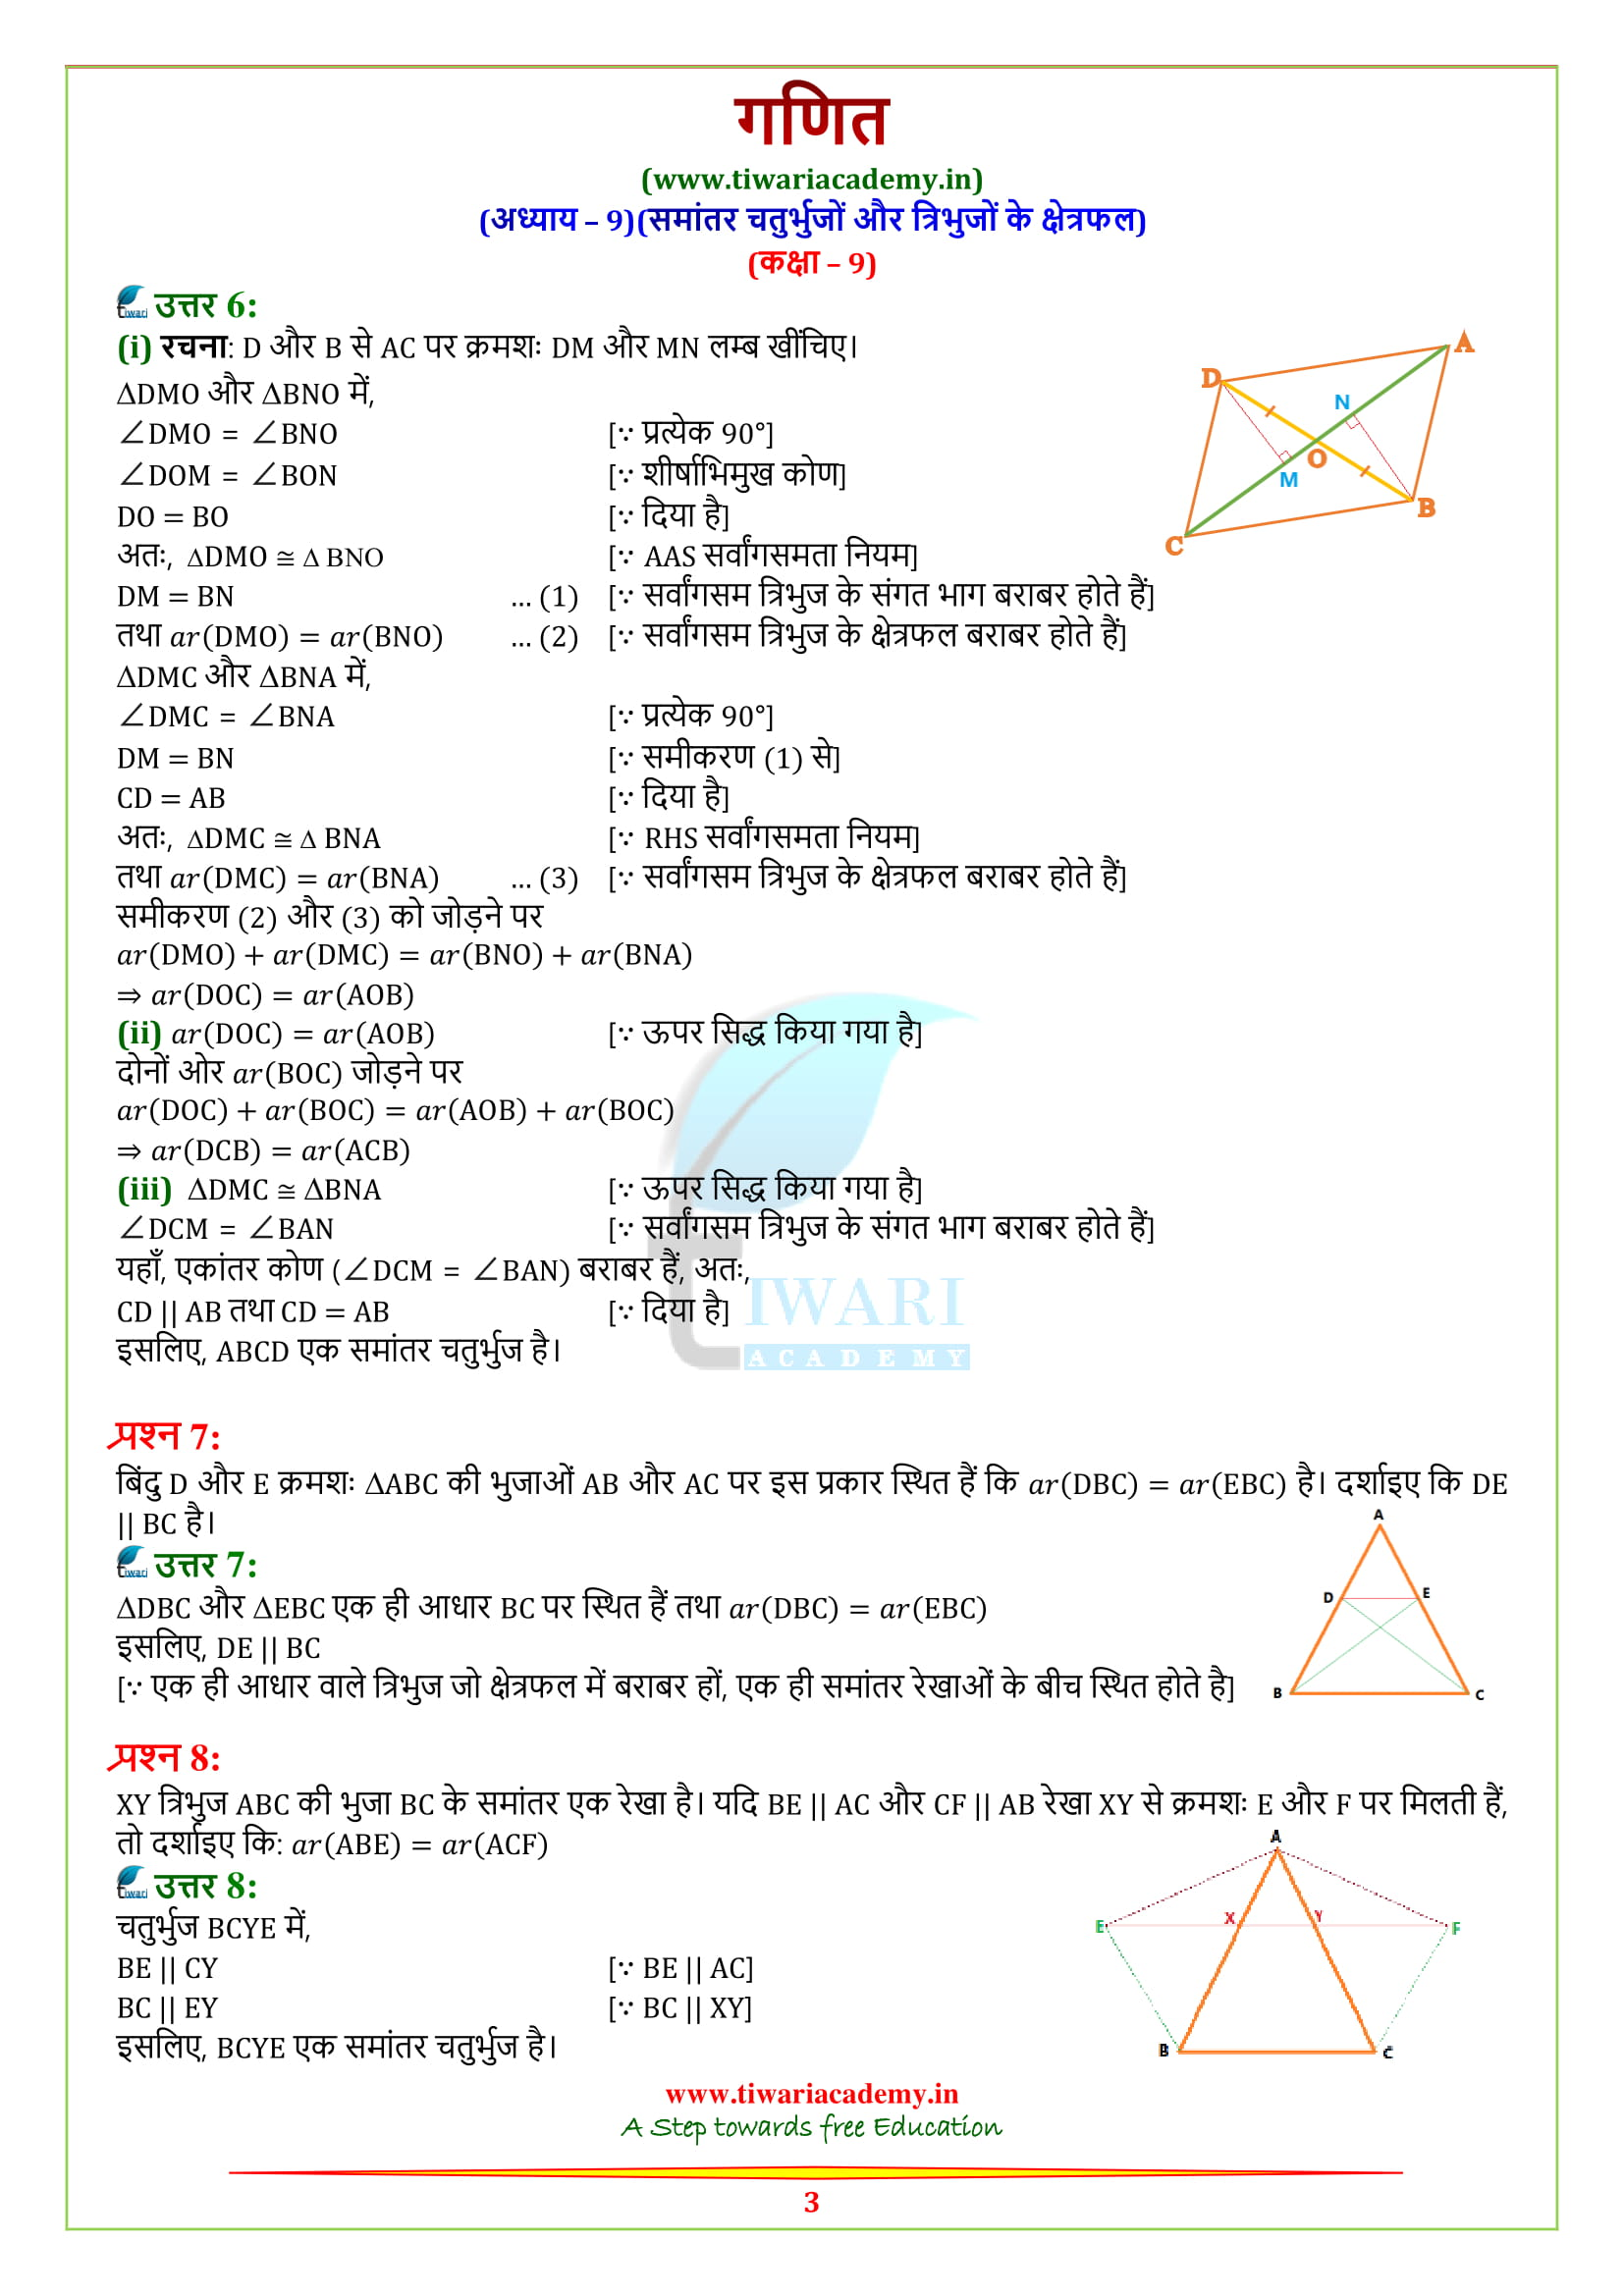 9 Maths Exercise 9.3 solutons free in pdf download